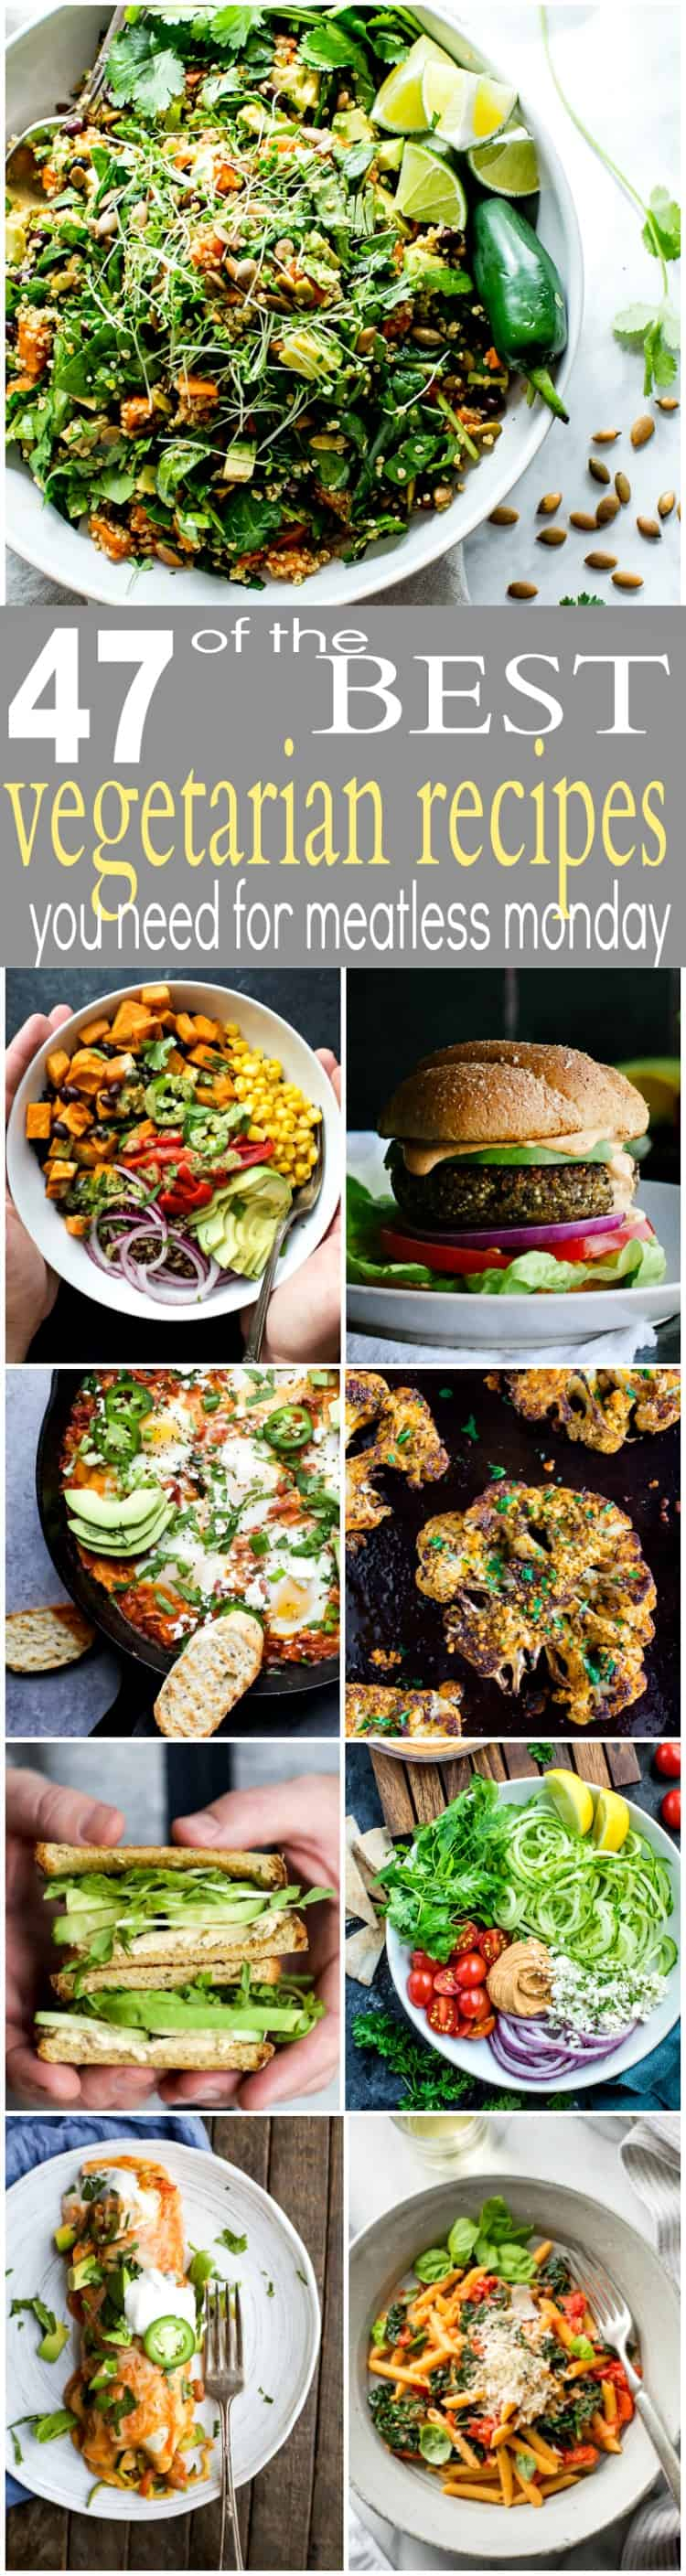 Vegetarian meals archives easy healthy recipes using for Recipes with minimal ingredients